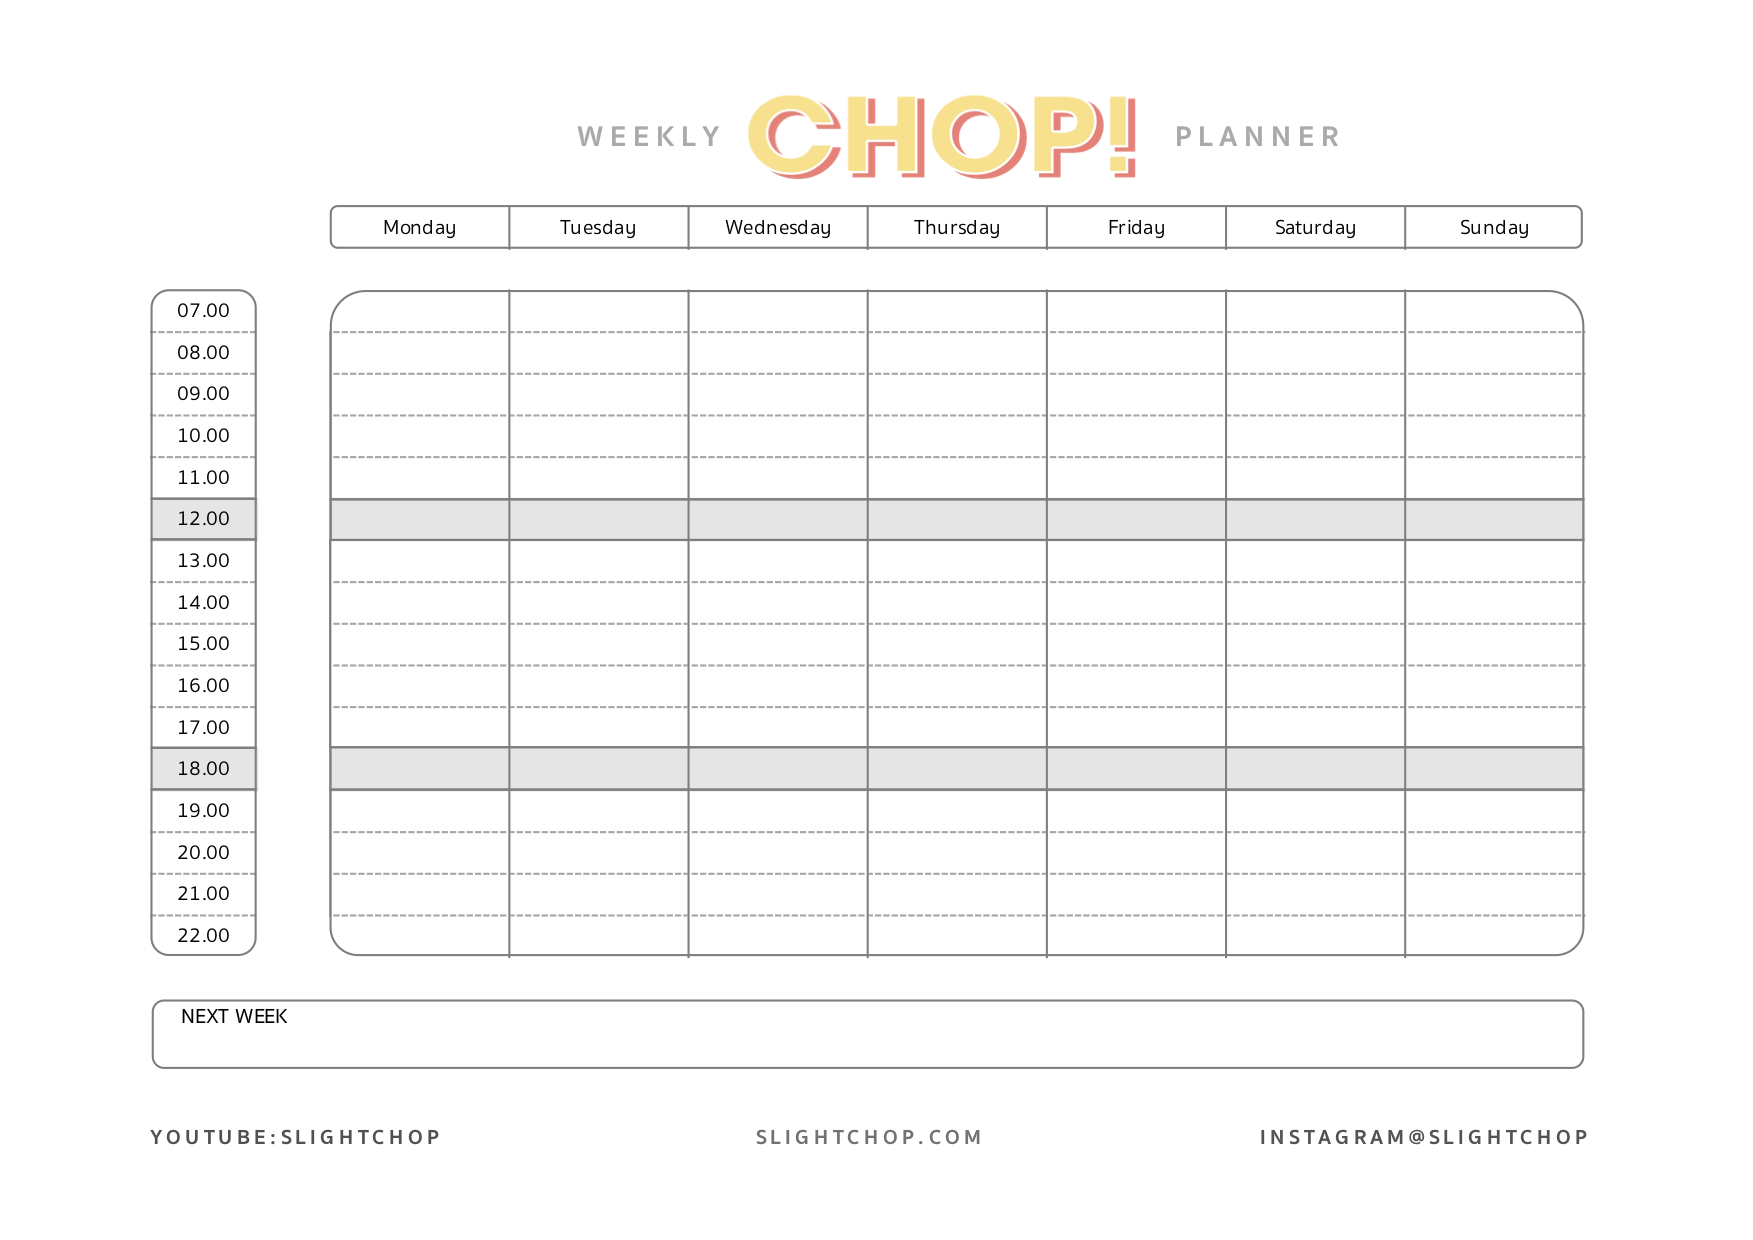 The CHOP! Free Weekly Planner for your most productive week | Freebies | Slight Change Of Plans | CHOP!